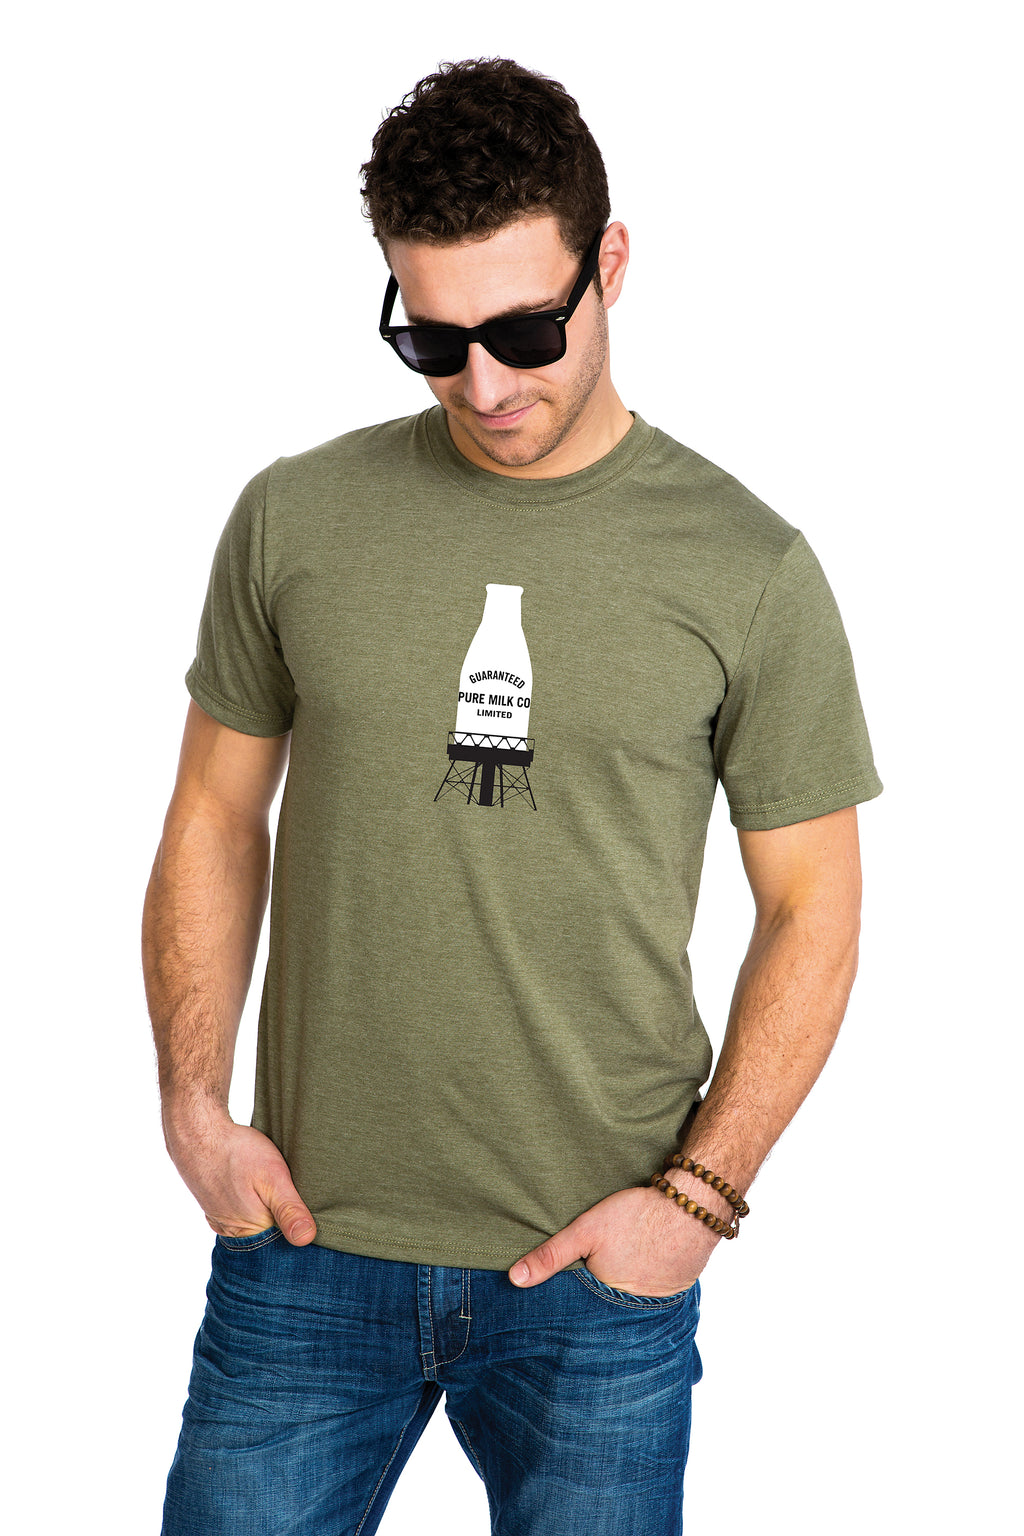 Mens Guaranteed Pure Milk bottle T-shirt Kaki Green Army bouteille